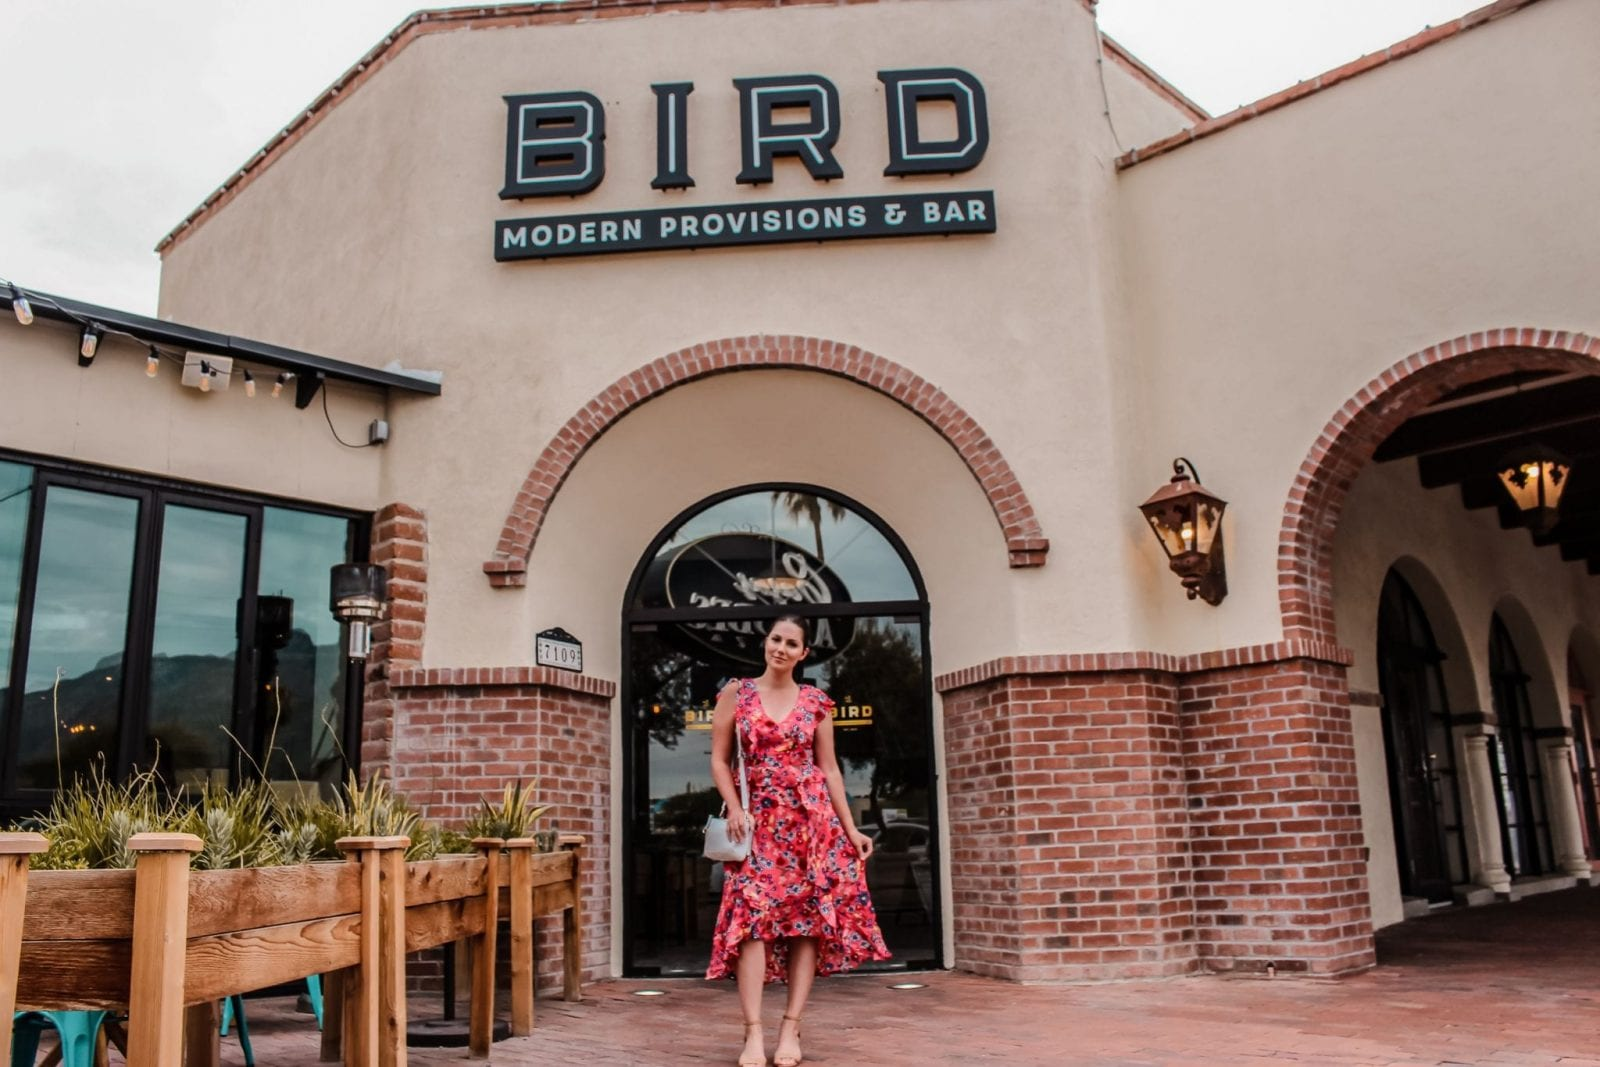 This is a full body shot of me standing outside Bird in Tucson Arizona.